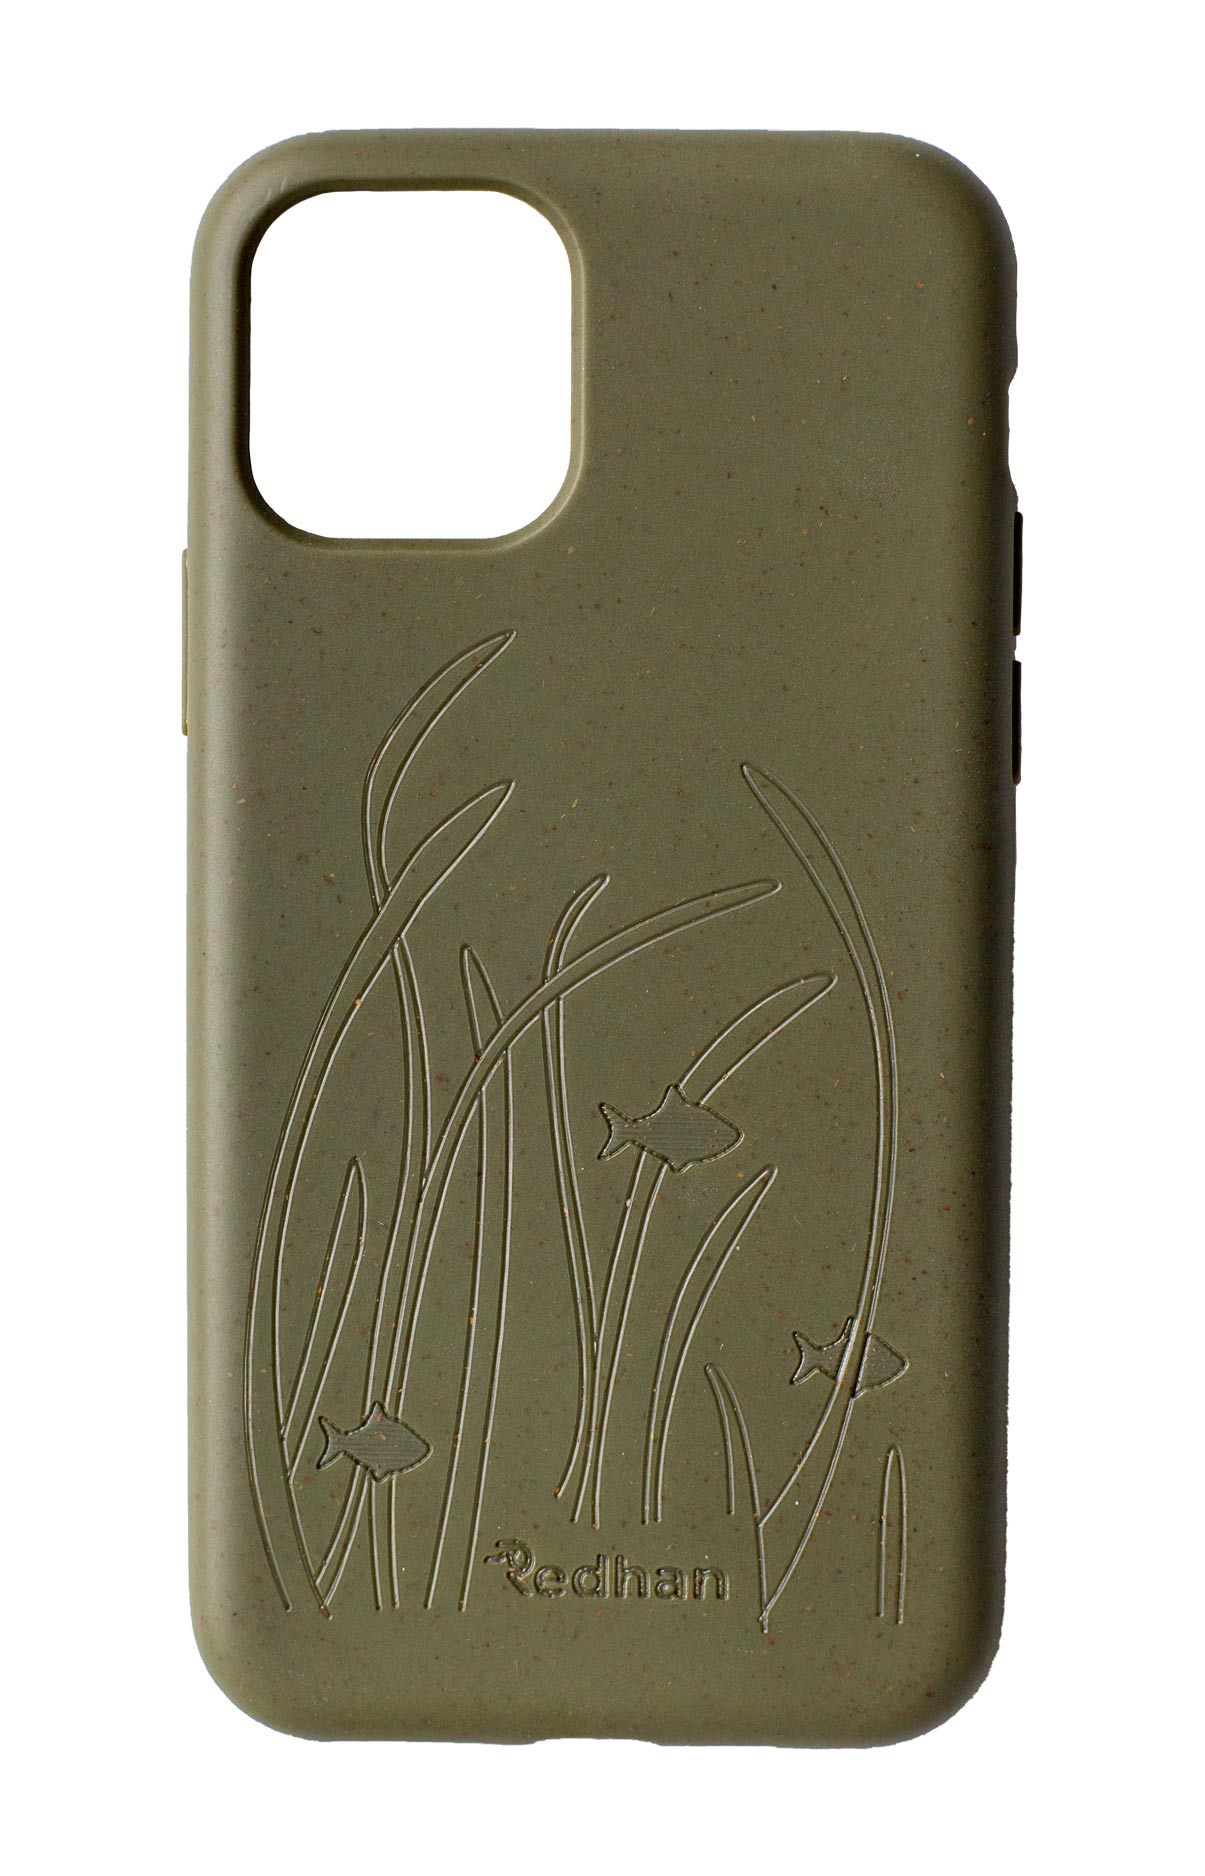 Eco Friendly iPhone 11 Phone Case - Seagrass in Olive Green